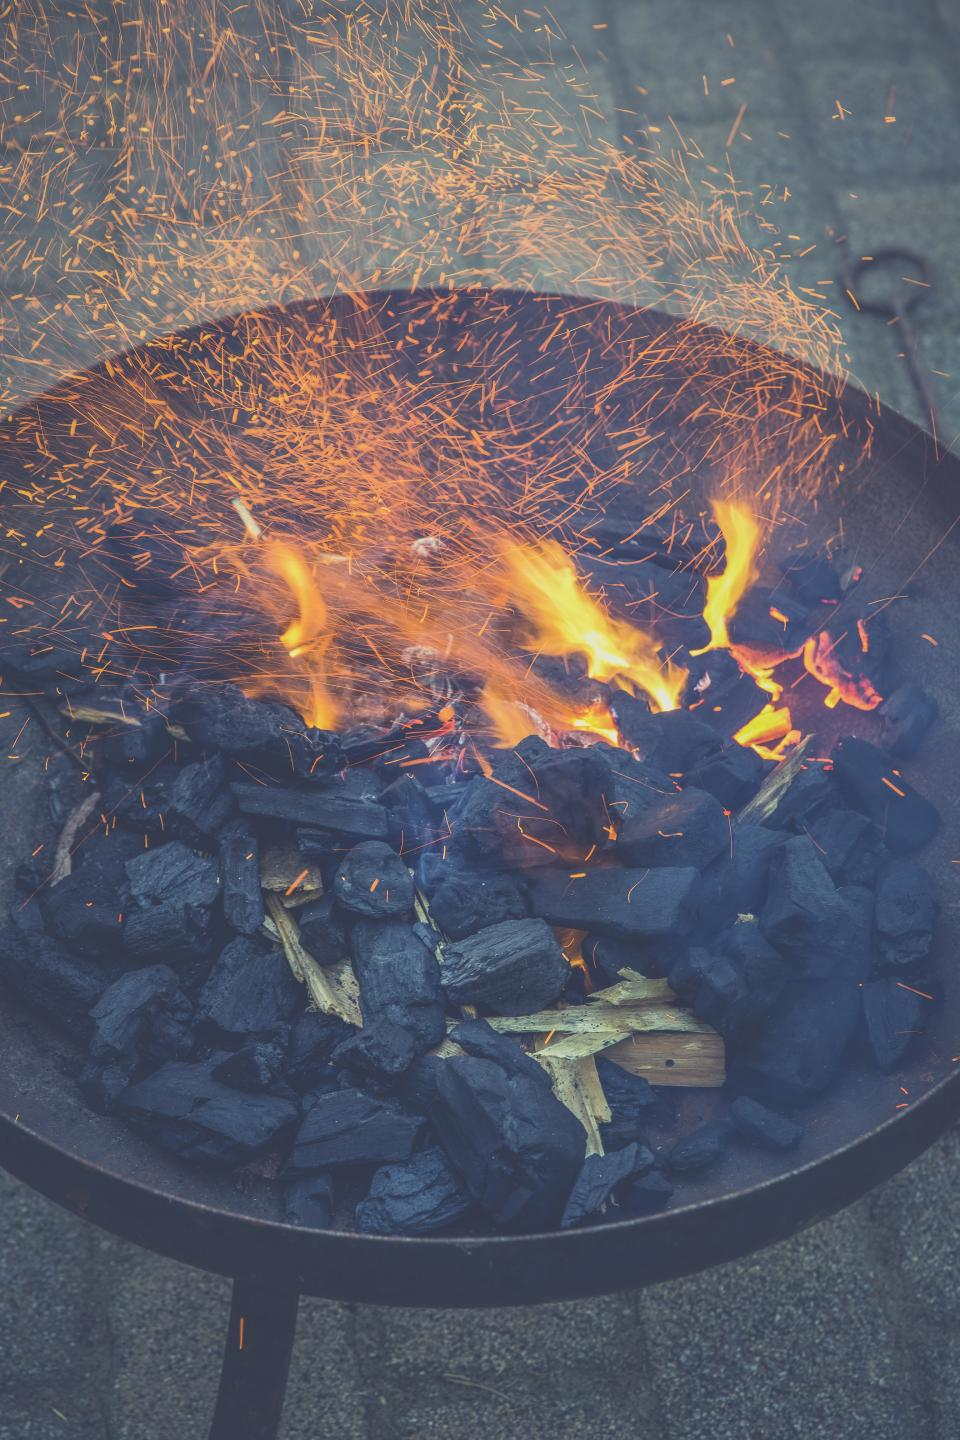 still items things grill charcoal burning flames fire charred sparks light bokeh